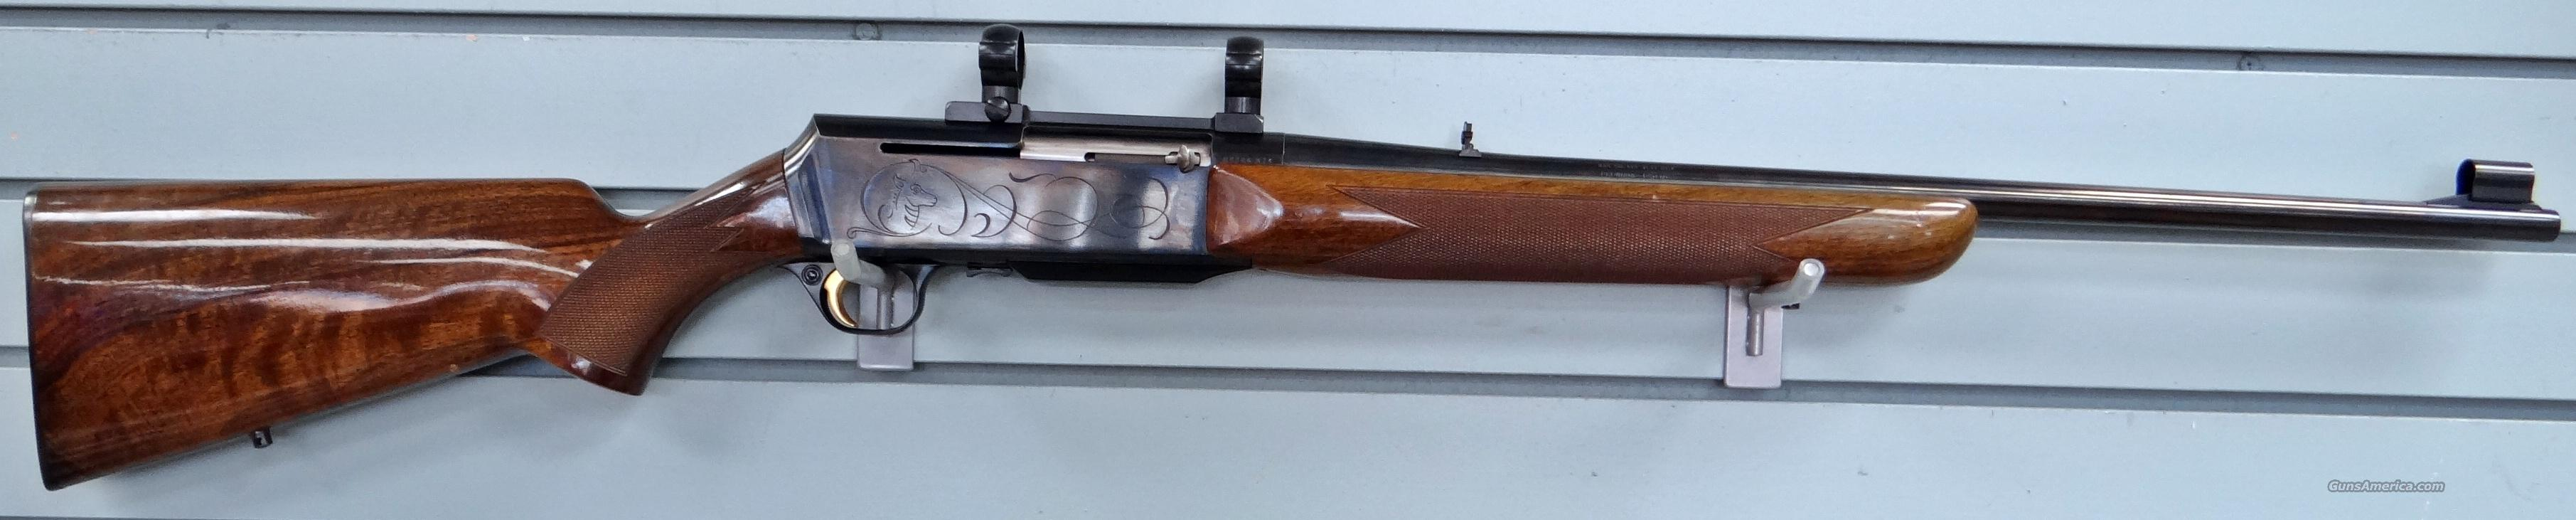 BELGIUM BROWNING BAR GRADE II 30-06  Guns > Rifles > Browning Rifles > Semi Auto > Hunting